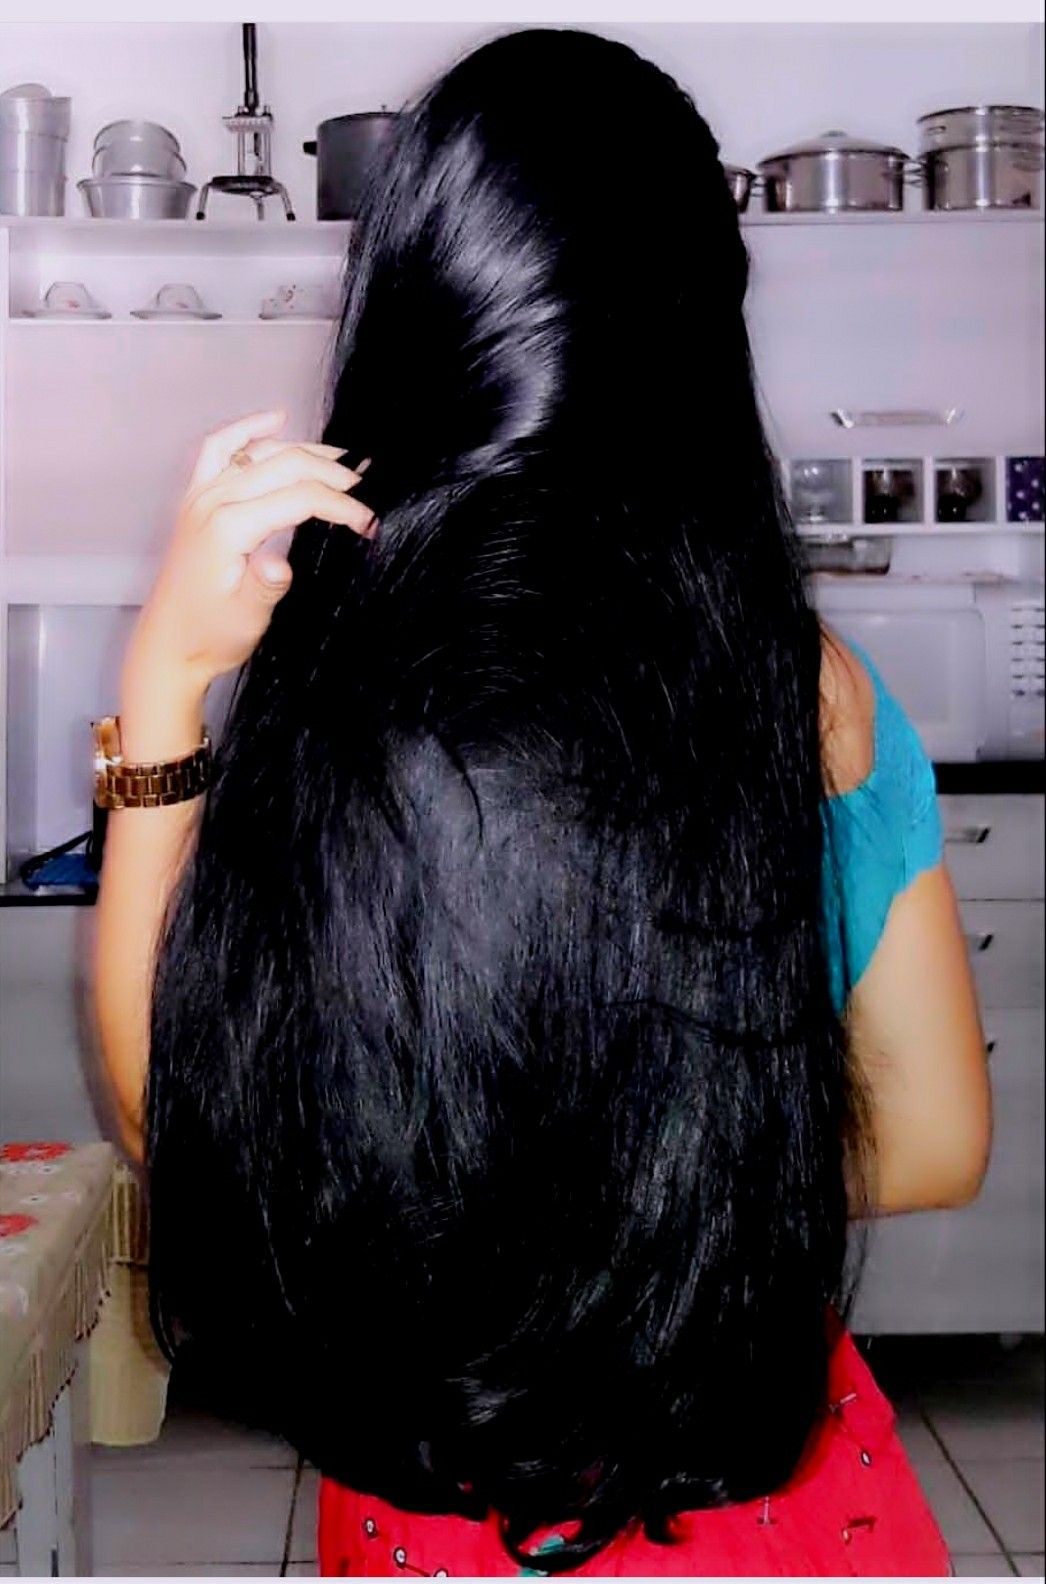 Gorgeous Long Black Hair Long Shiny Hair Long Hair Styles Beautiful Long Hair